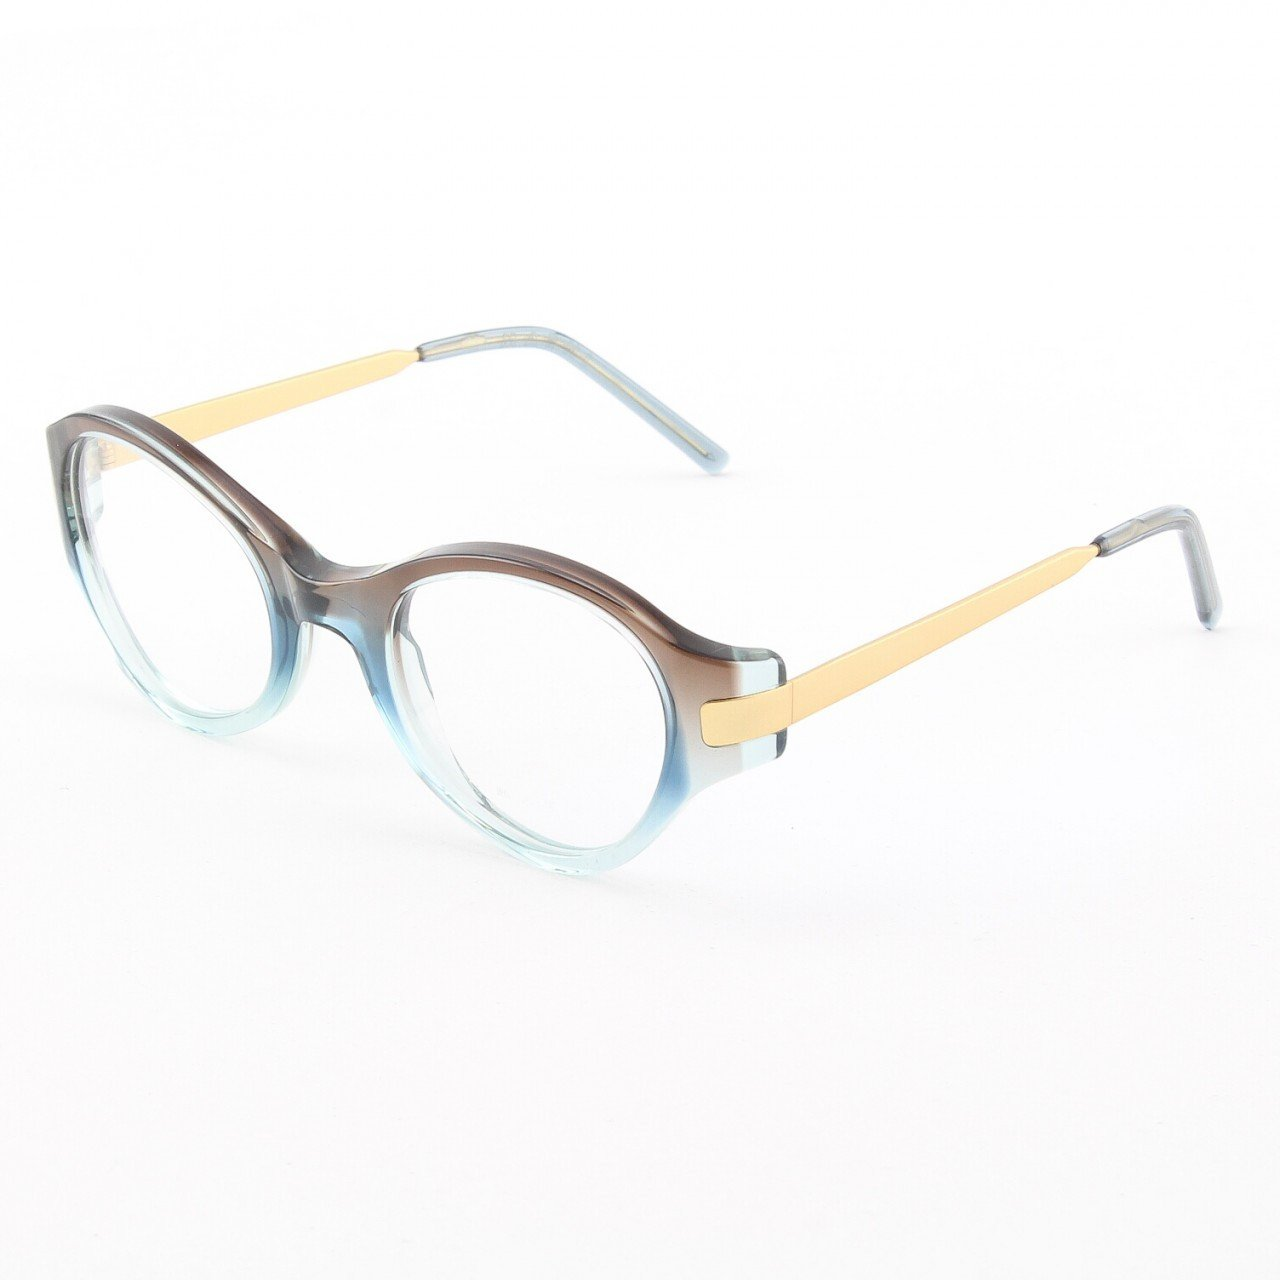 Marni MA679S Eyeglasses Col. 01 Translucent Brown to Teal with Antique Gold Accents and Clear Lenses